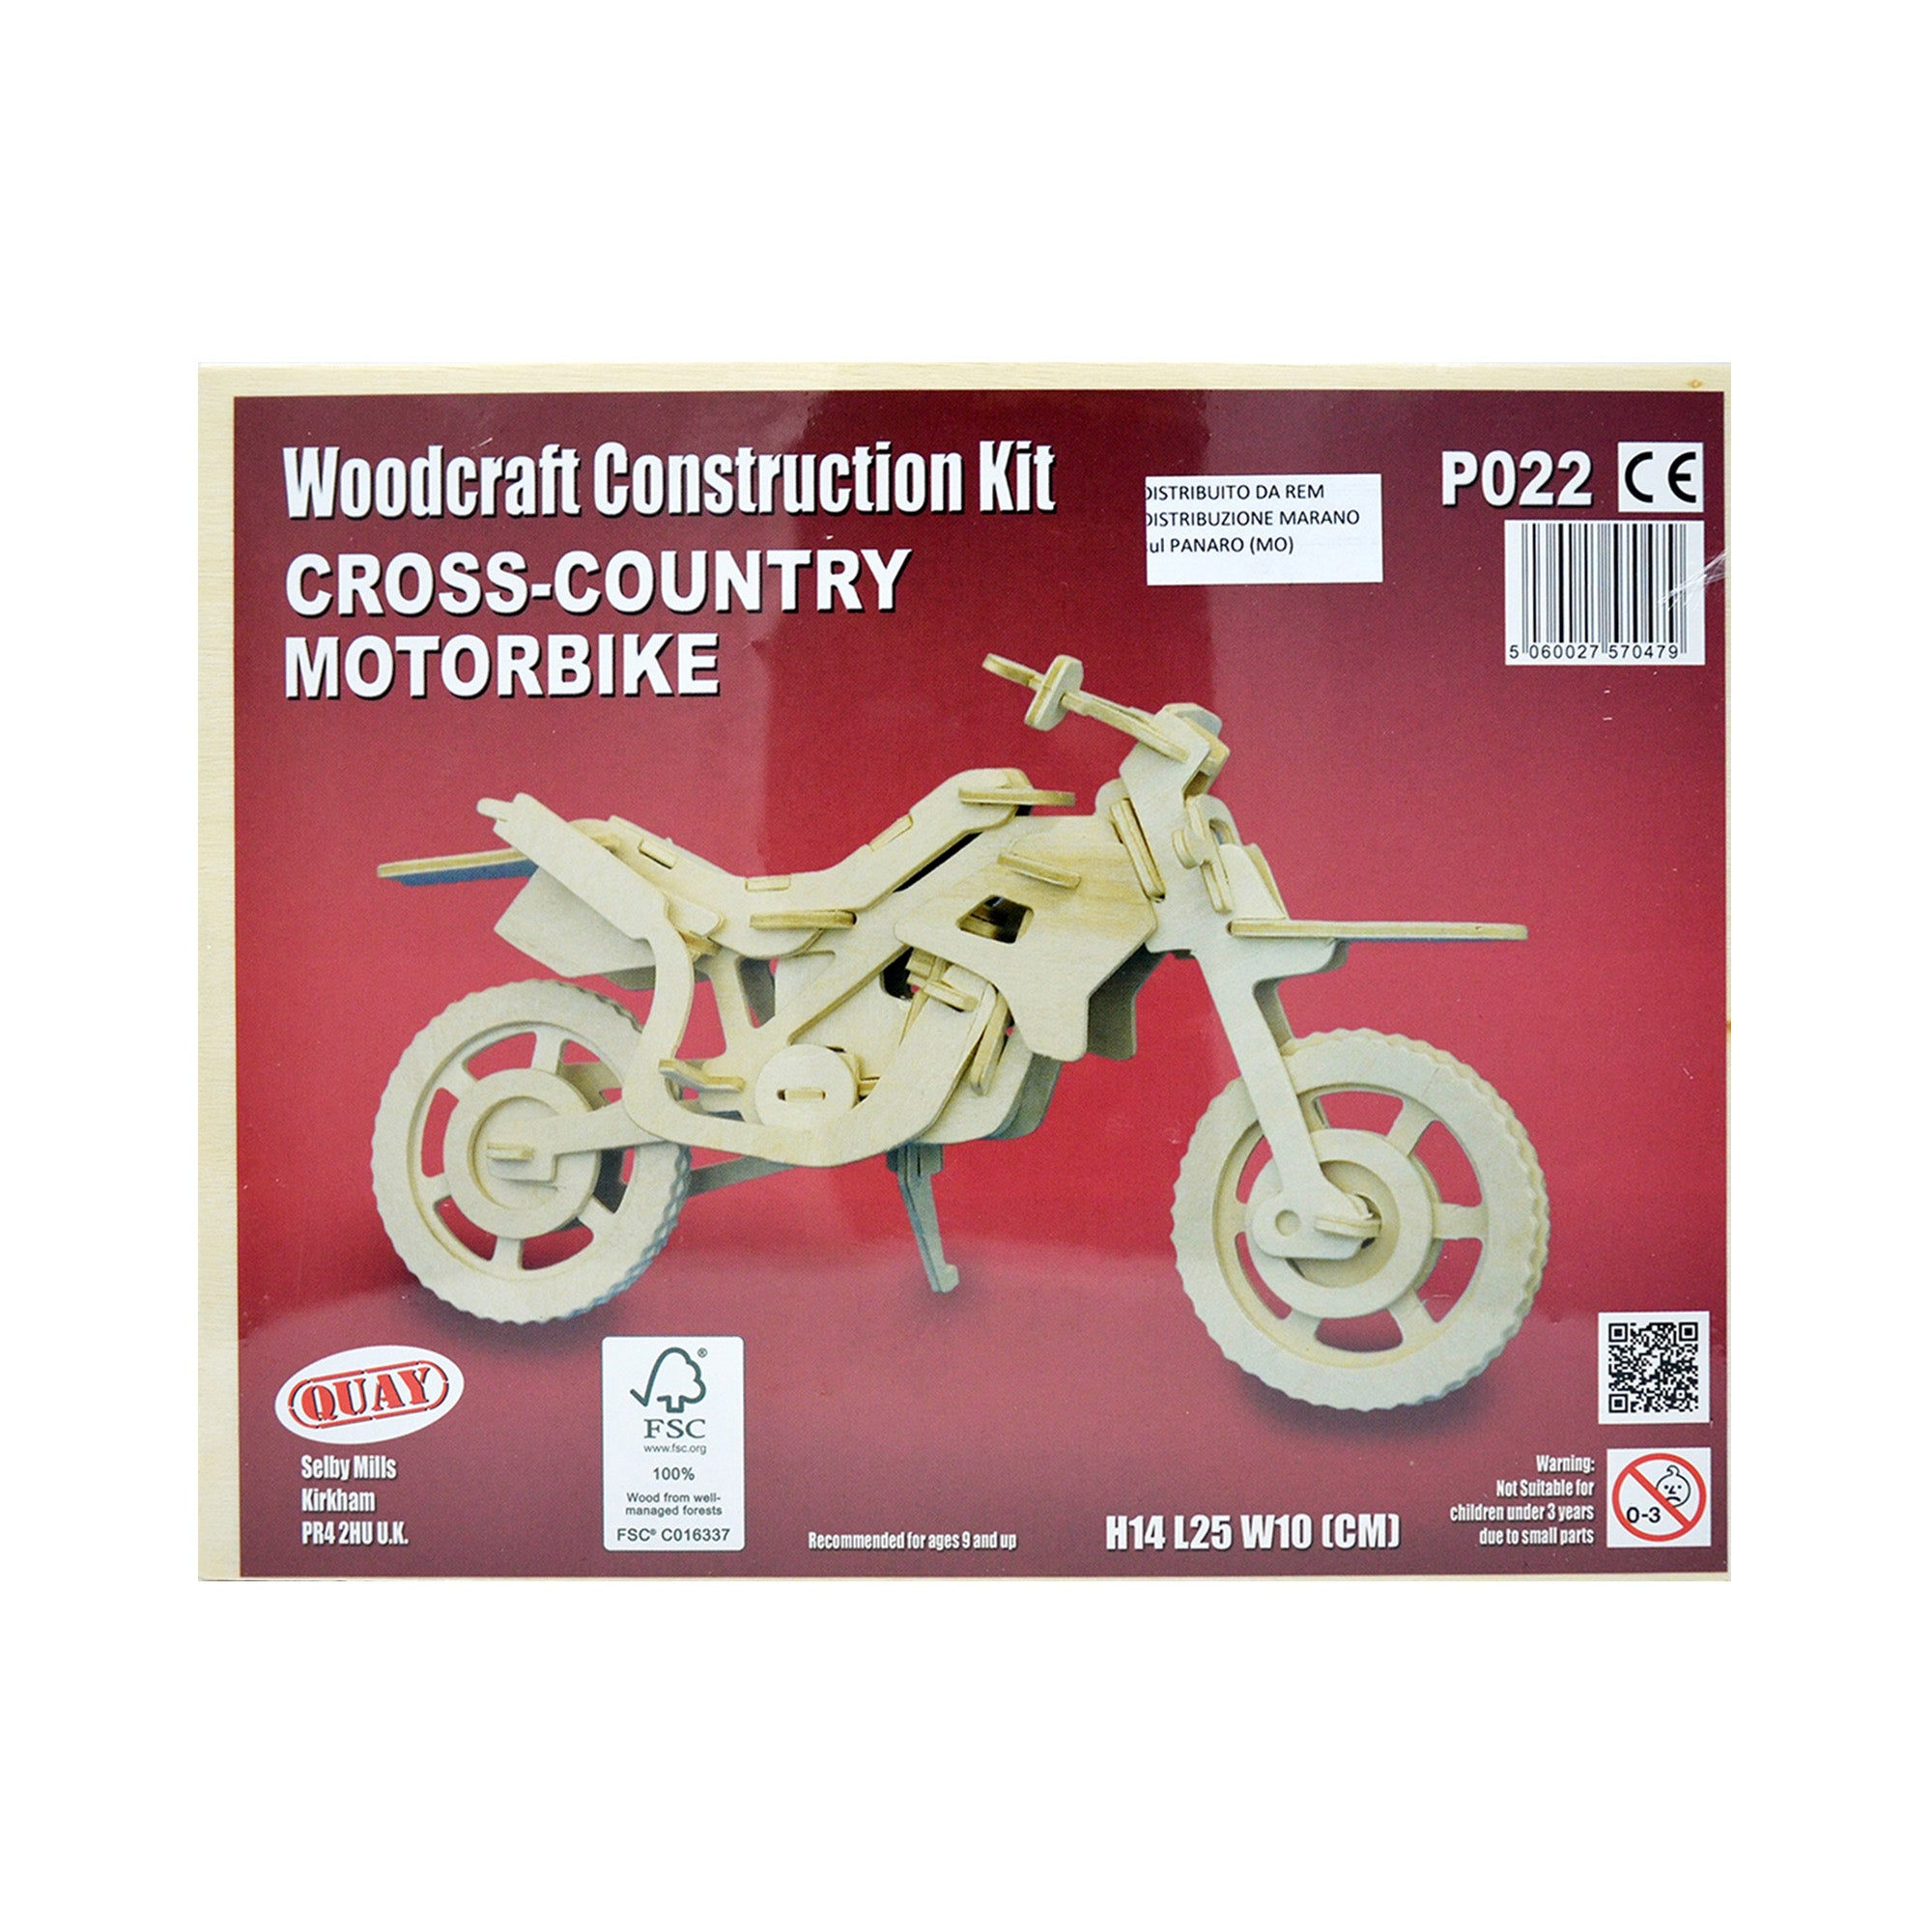 Puzzle tridimensionali in legno - Cross-Country Motorbike